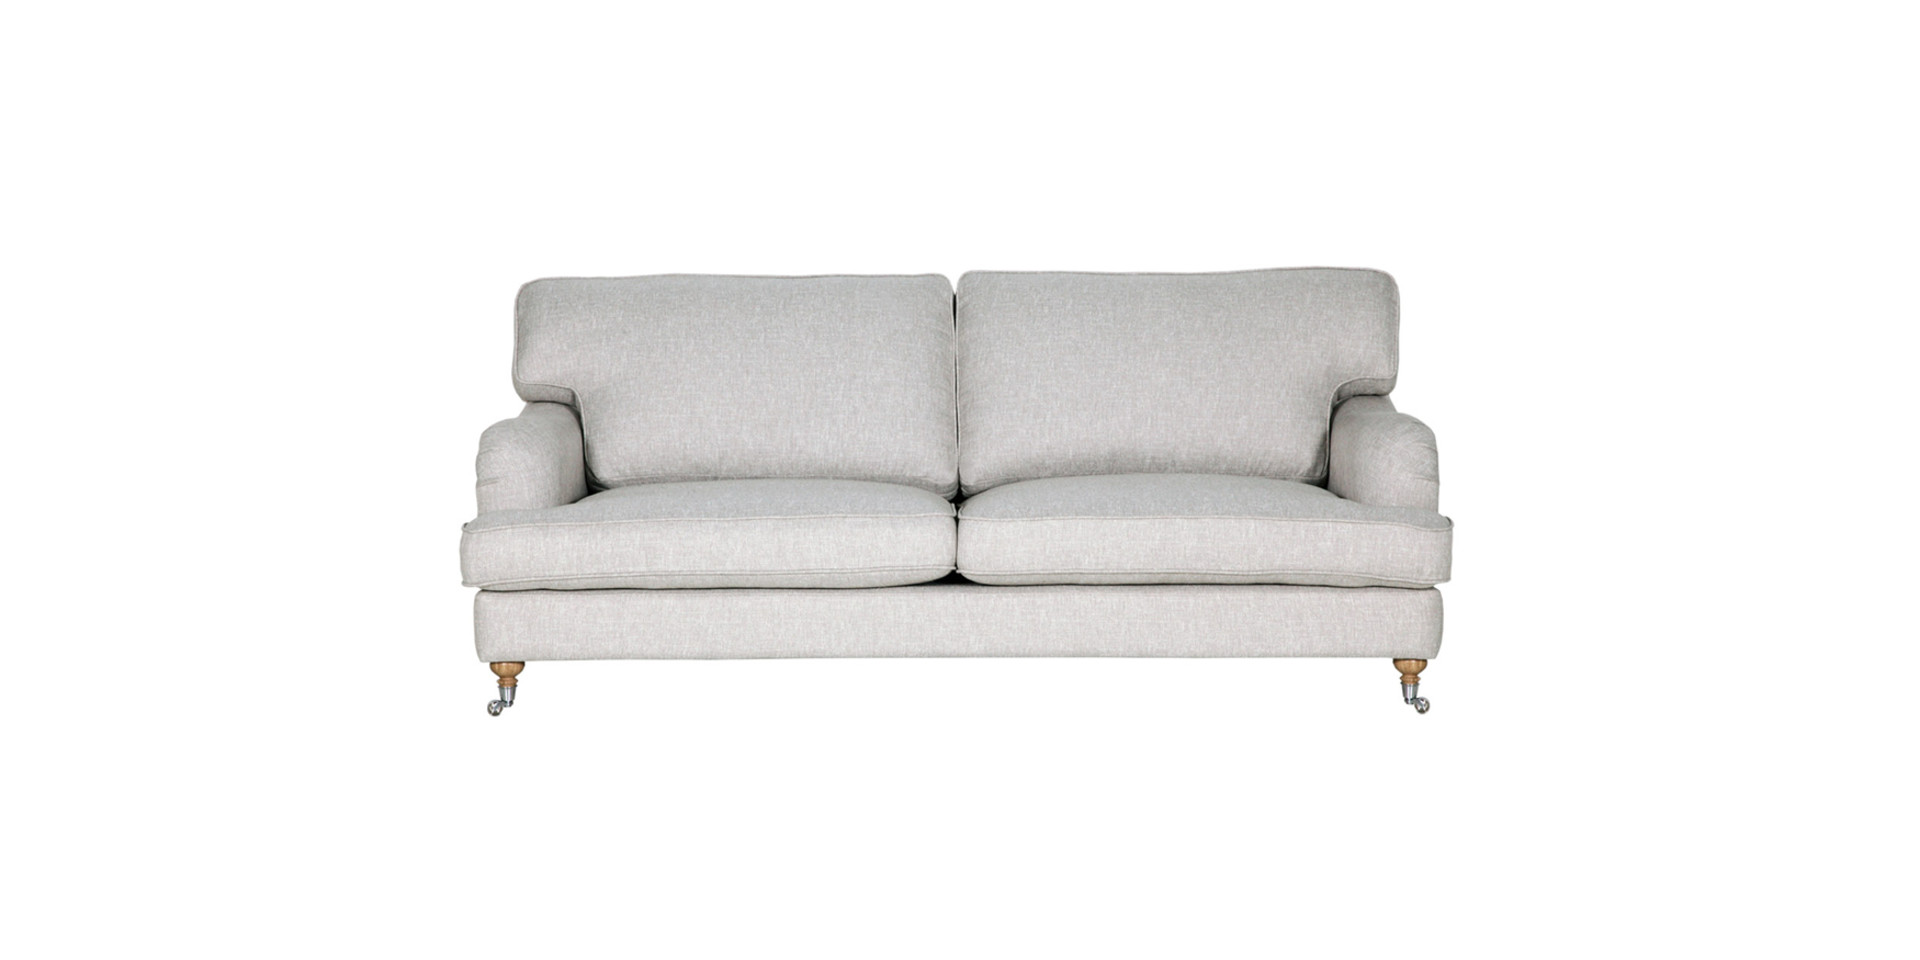 sits-howard-canape-3seater_nancy2_beige_1